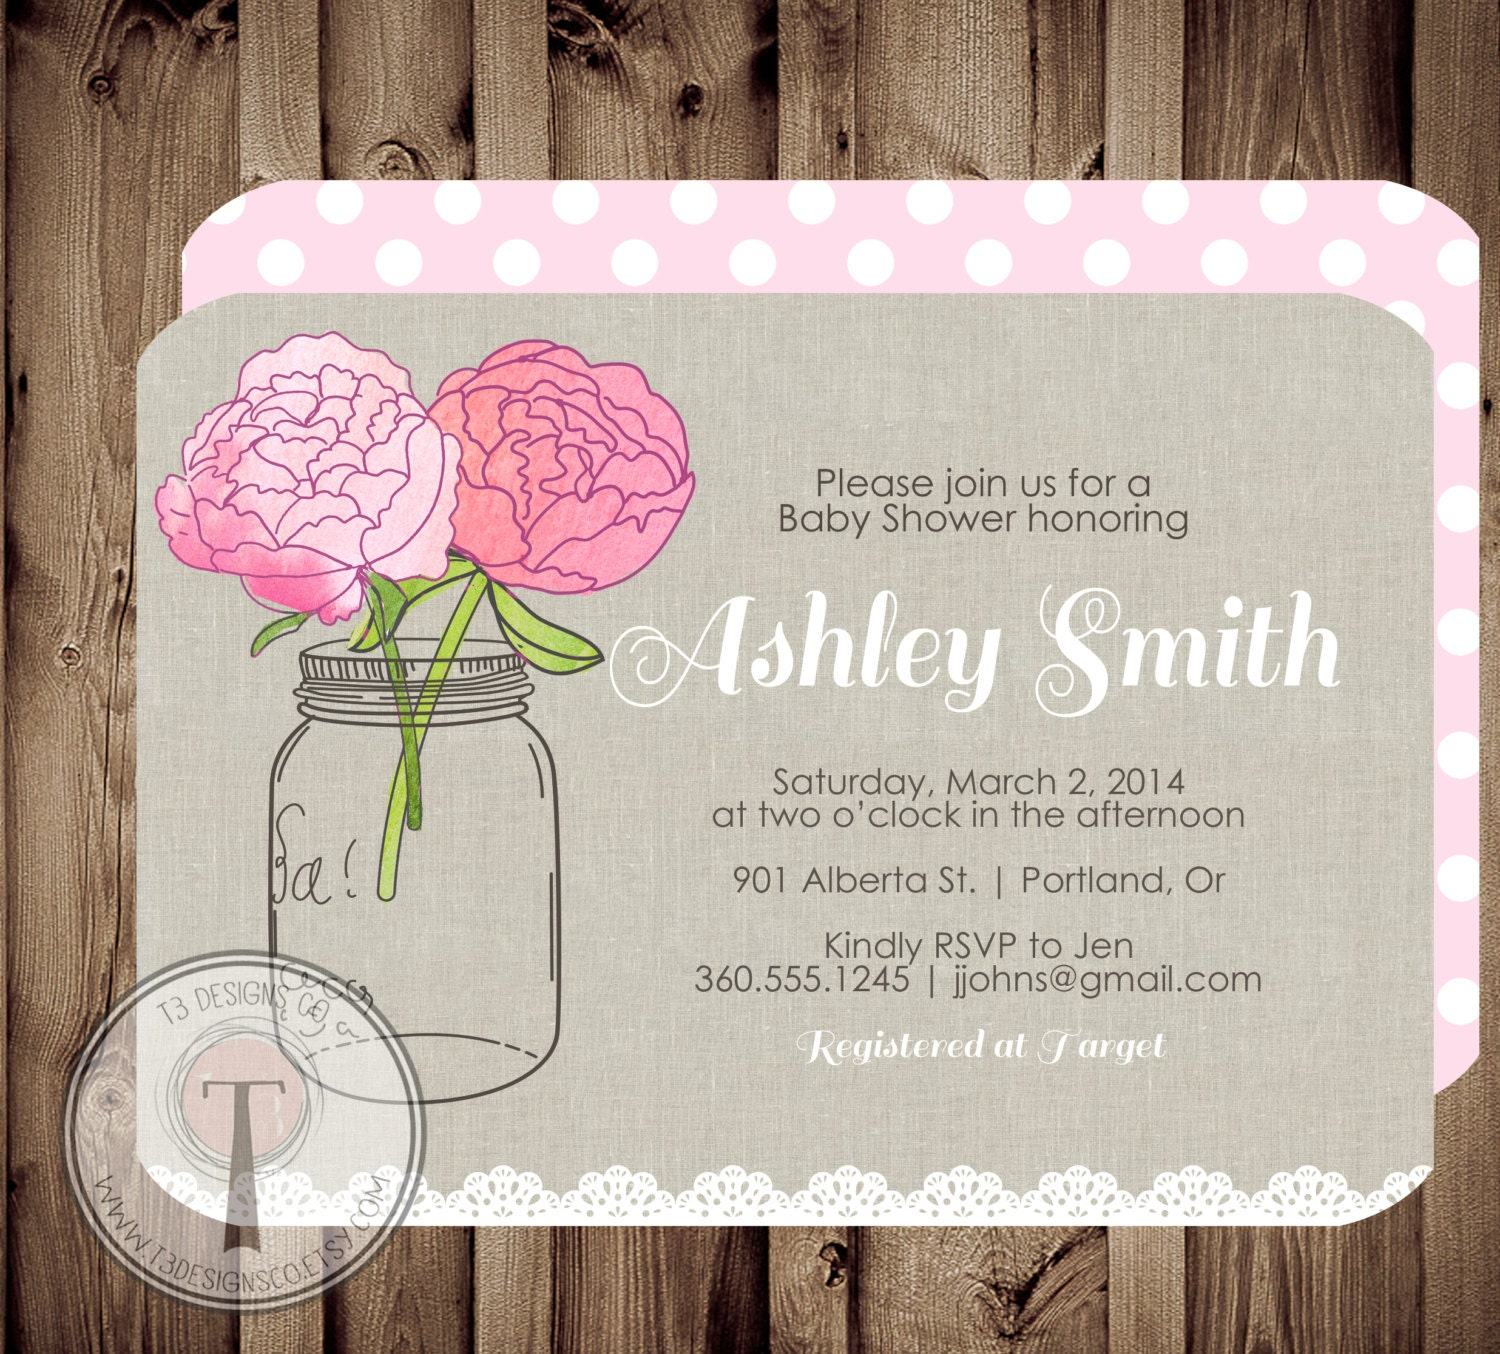 rustic bridal shower invitation bridal shower invitation wedding shower mason jars invite rustic country bridal shower lace